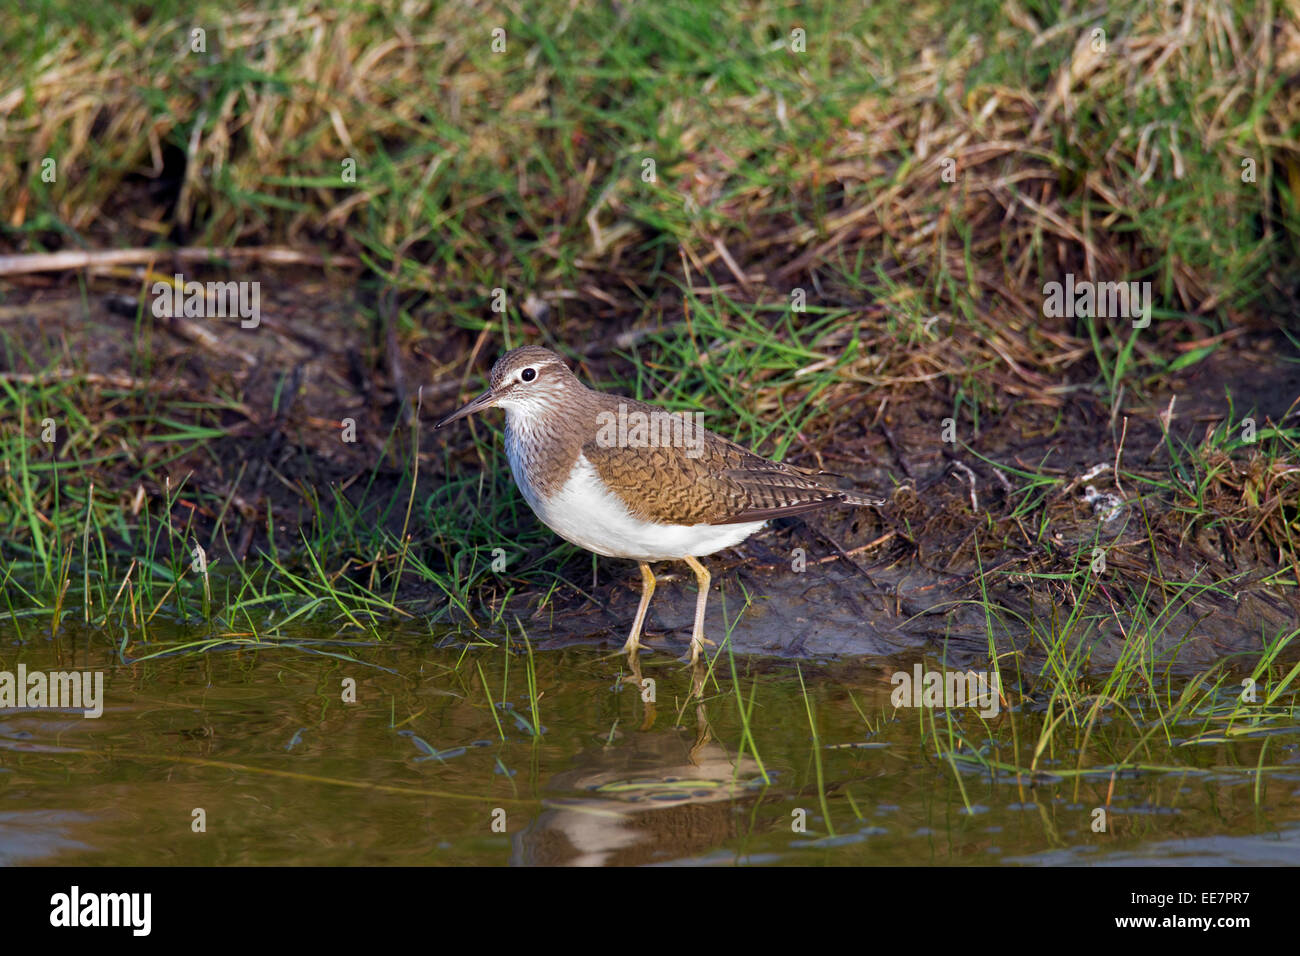 Common sandpiper (Actitis hypoleucos) foraging along riverbank - Stock Image